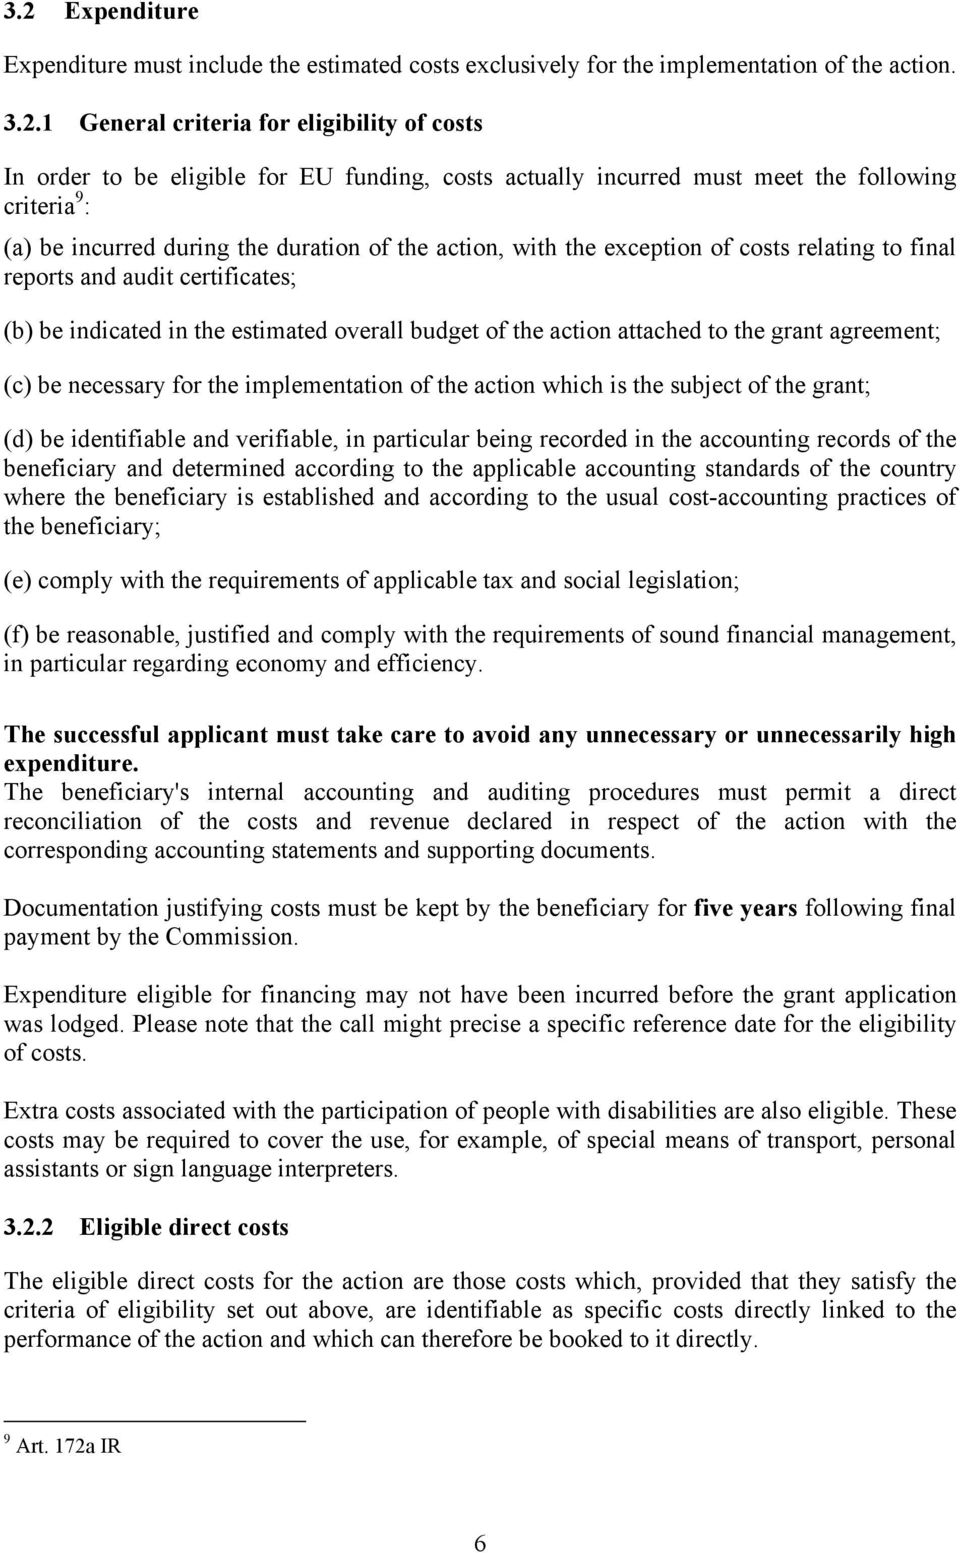 indicated in the estimated overall budget of the action attached to the grant agreement; (c) be necessary for the implementation of the action which is the subject of the grant; (d) be identifiable